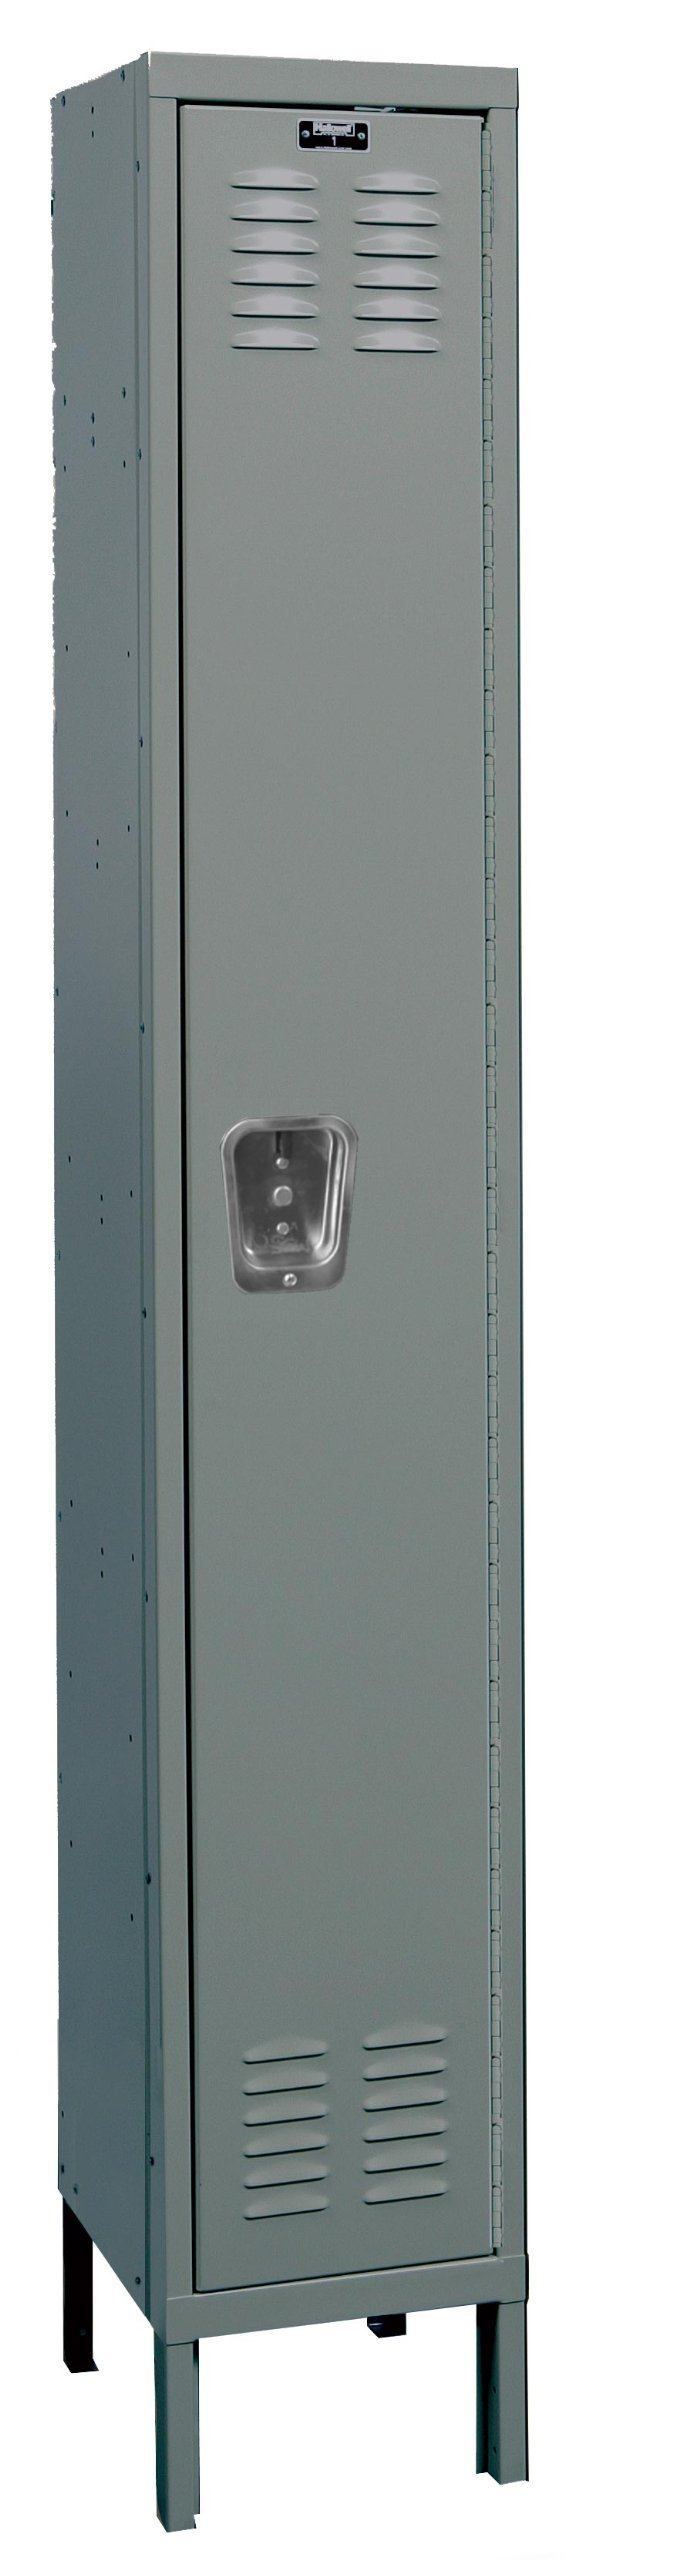 Hallowell U1818-1HG Premium Locker, 18'' Width x 21'' Depth x 78'' Height, Single Tier, 1-Wide, Knock-Down, 725 Gray